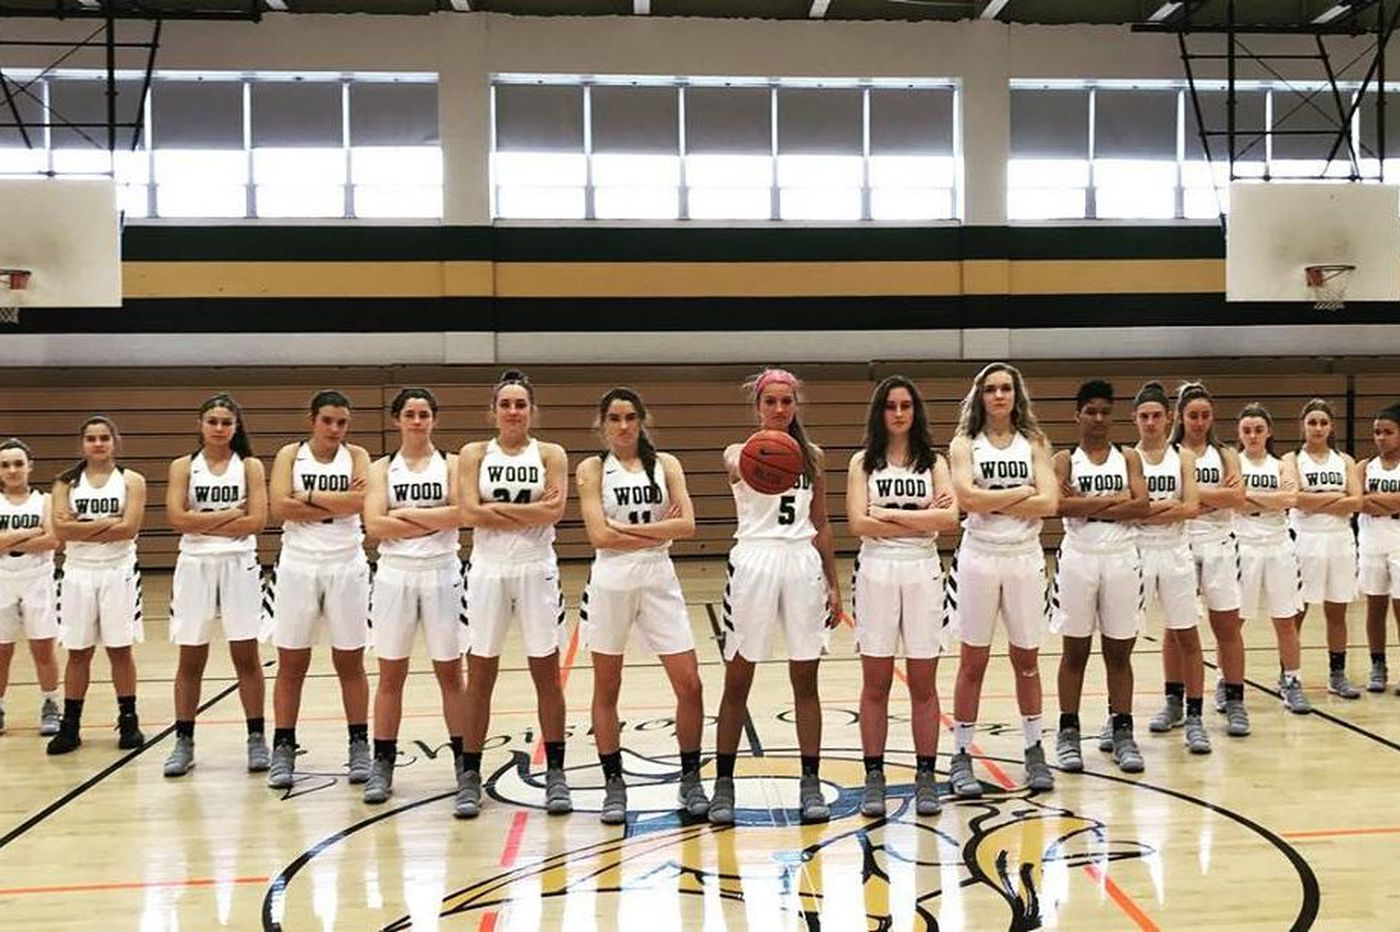 Archbishop Wood girls go for third straight PIAA state championship